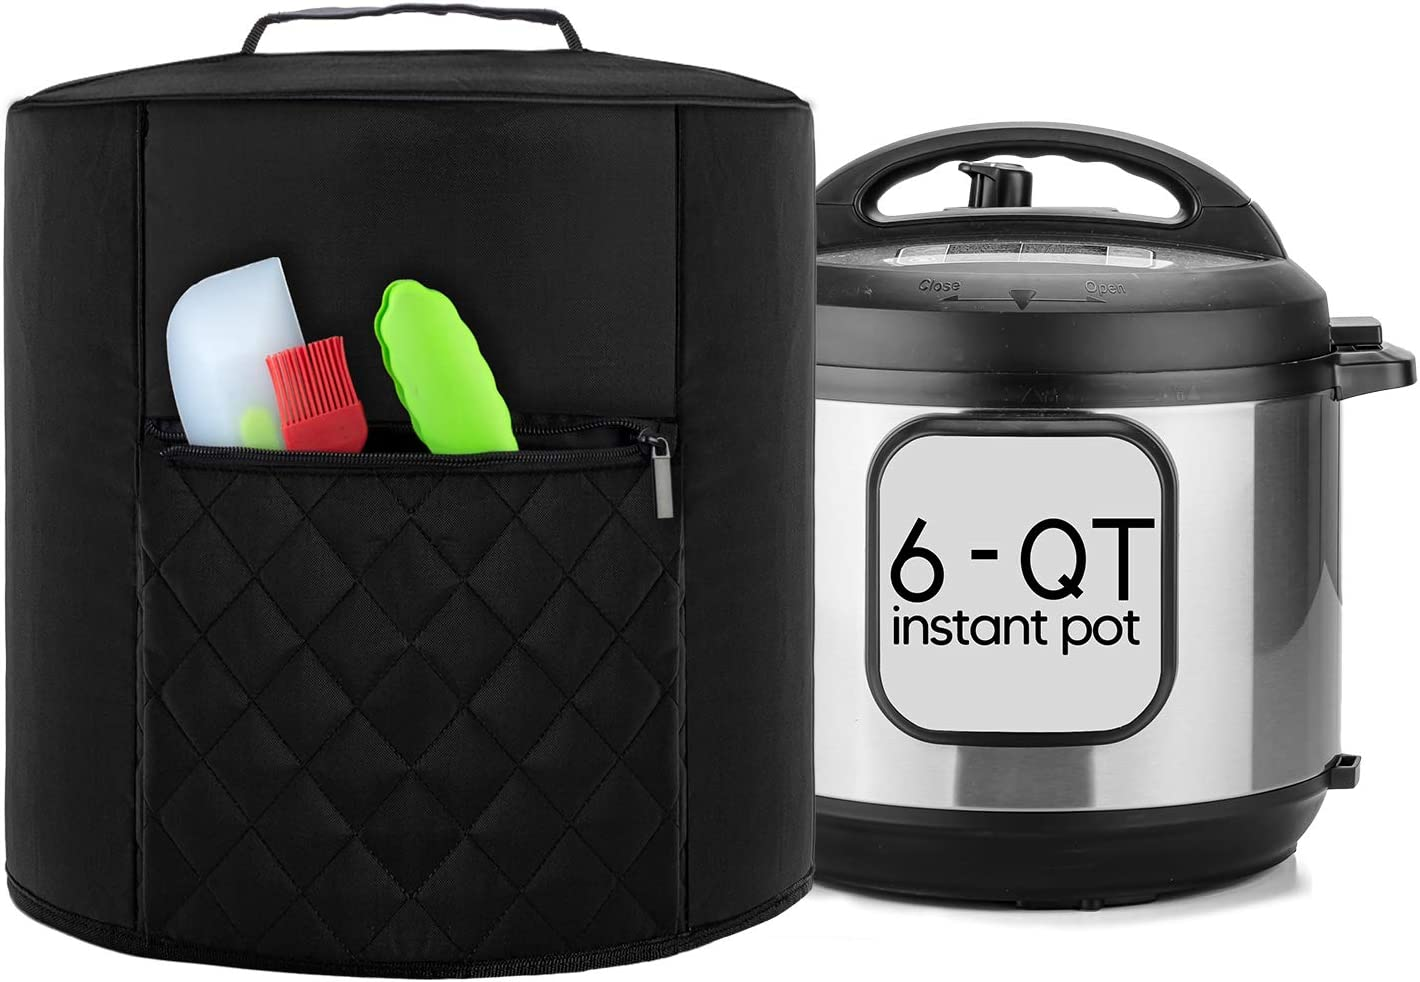 Luxja Cover Compatible with 6 Quart Instant Pot, Pressure Cooker Cover with Zipper Pocket (Compatible with 6 Quart Instant Pot), Black